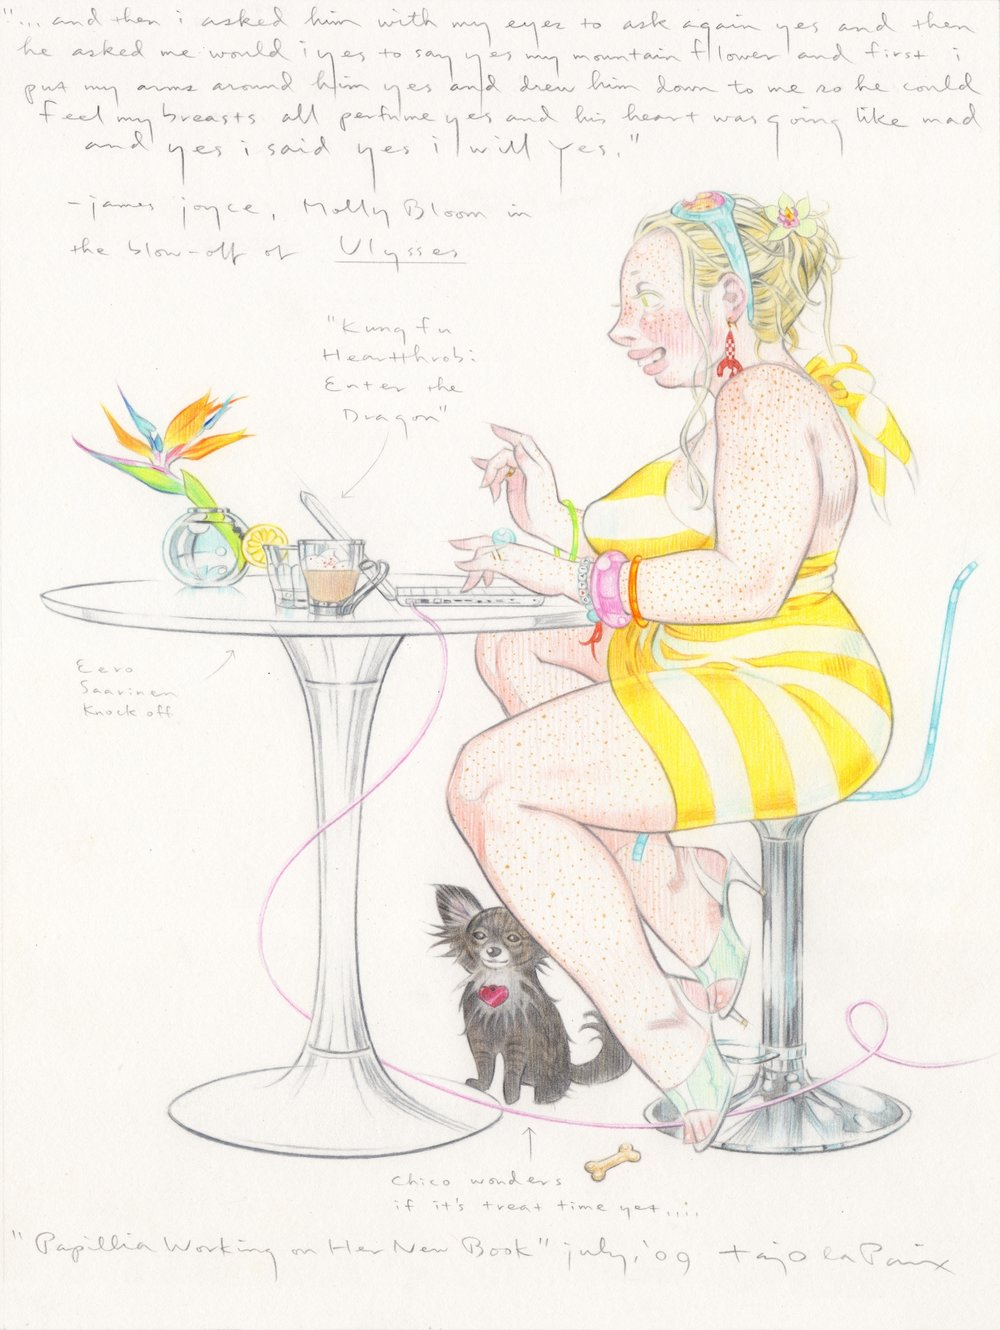 Papillia Working on Her New Book, 2009, pencil on paper, 12 x 9 inches, courtesy of Kim Alderman